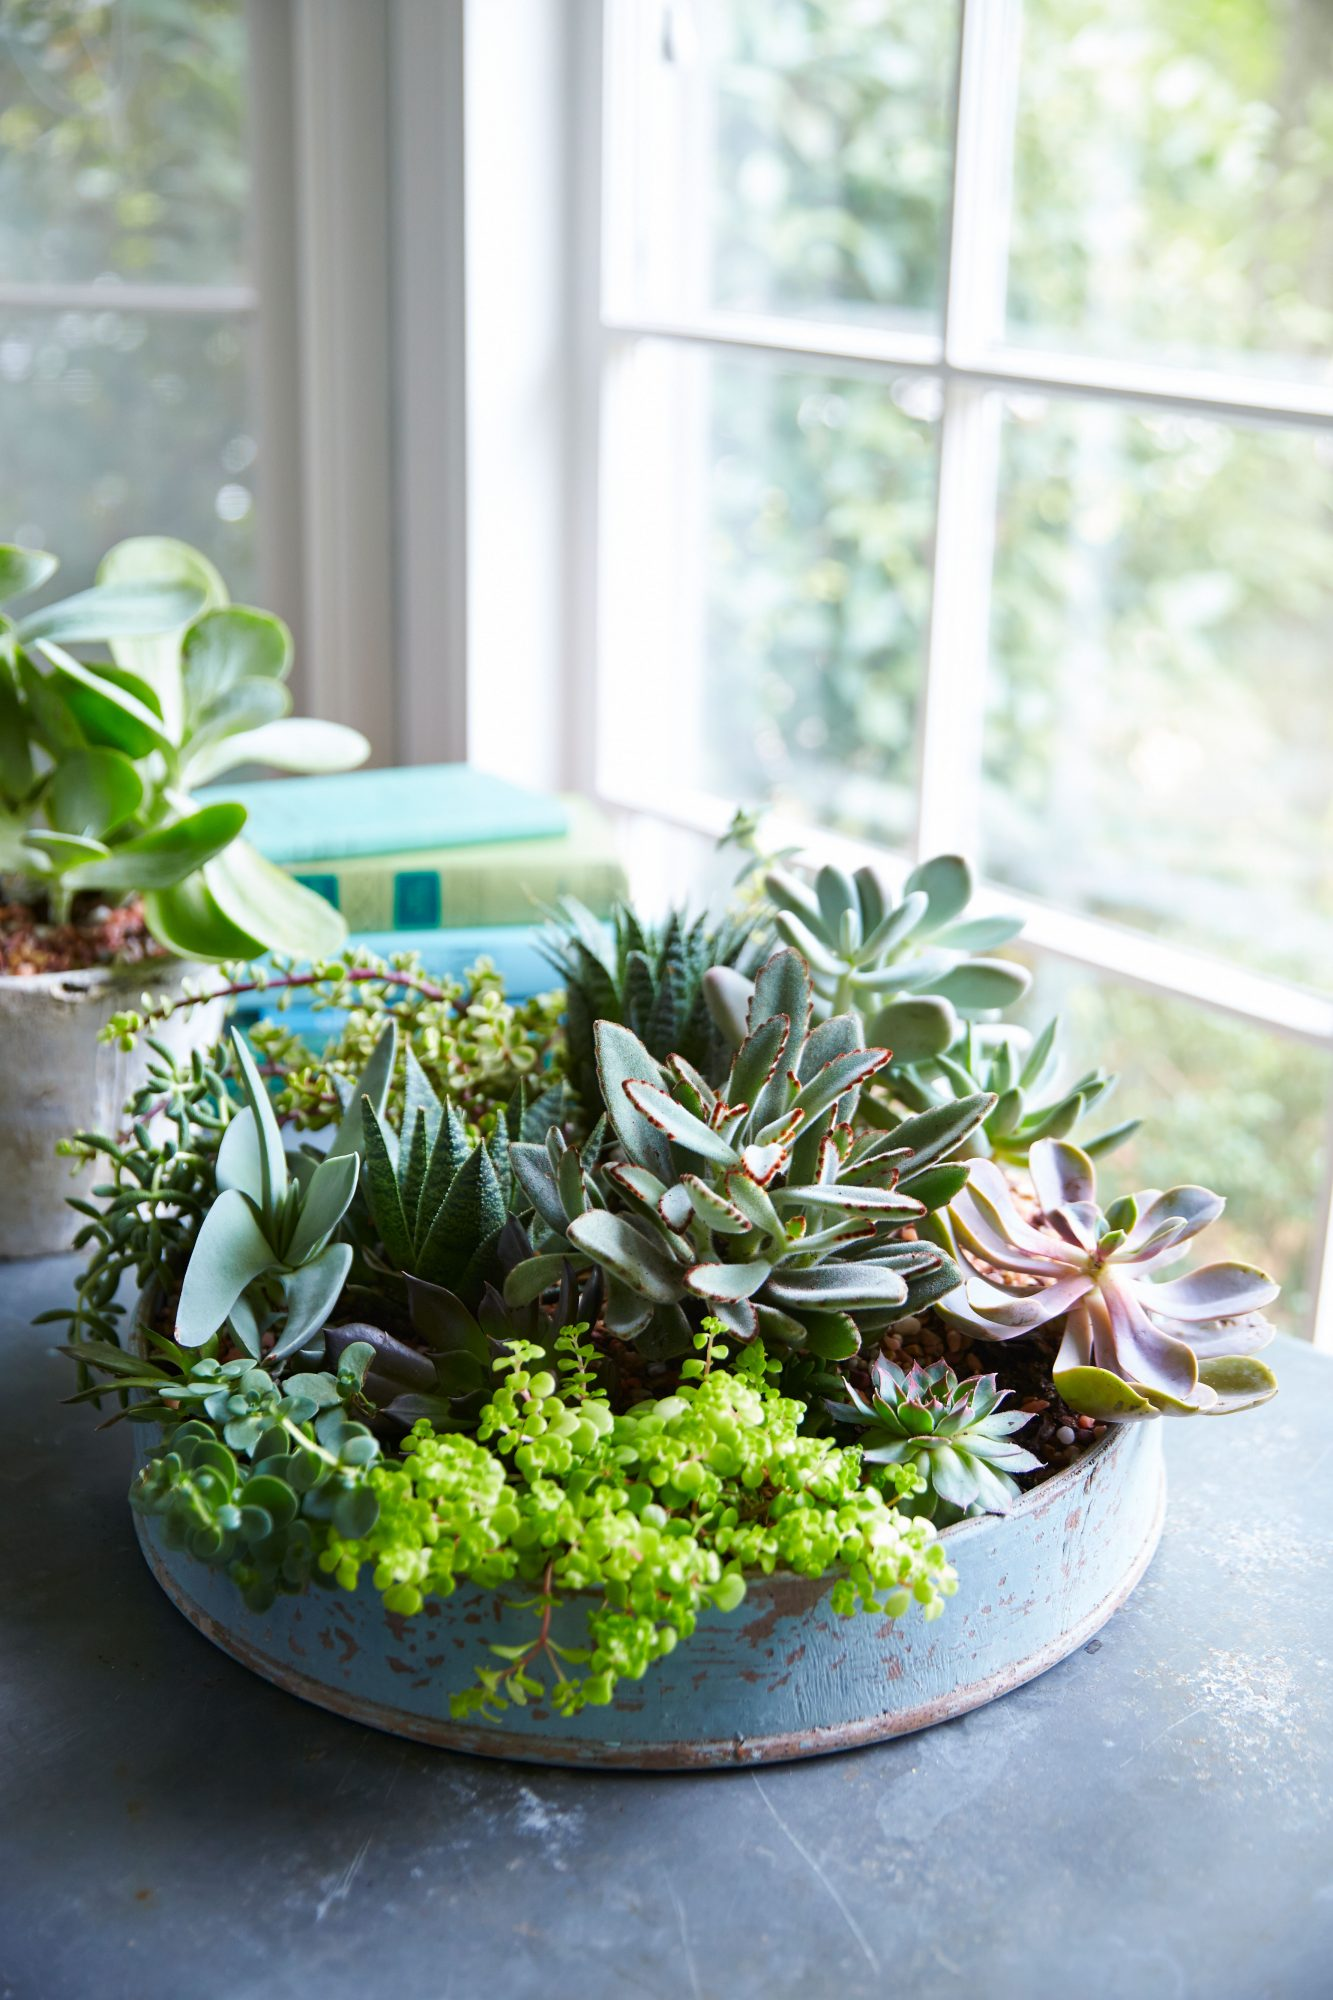 Succulents in Shallow Planter by Window